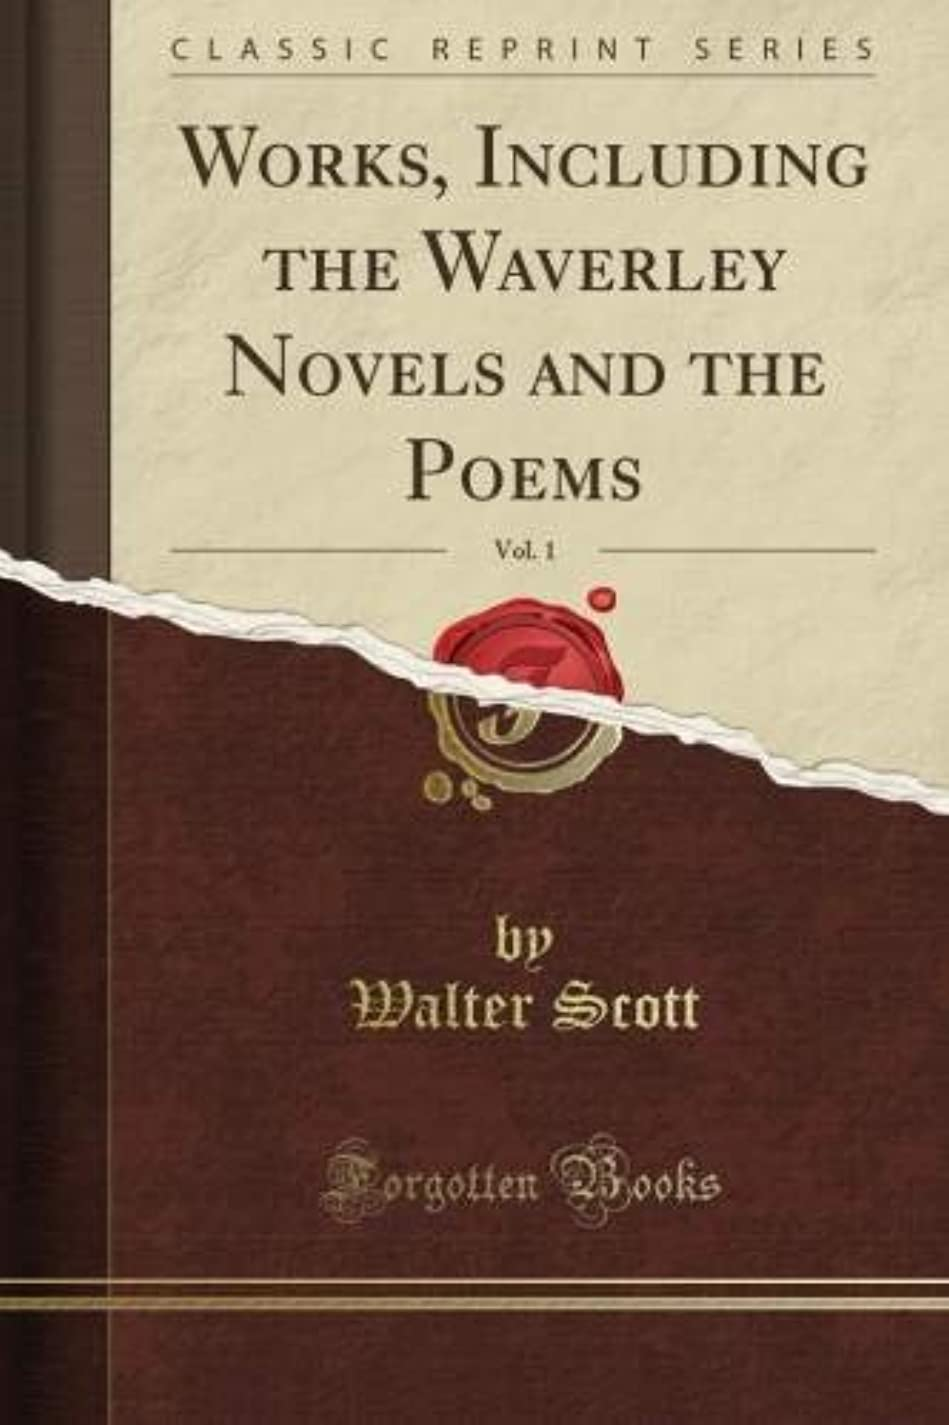 抑圧翻訳者光電Works, Including the Waverley Novels and the Poems, Vol. 1 (Classic Reprint)